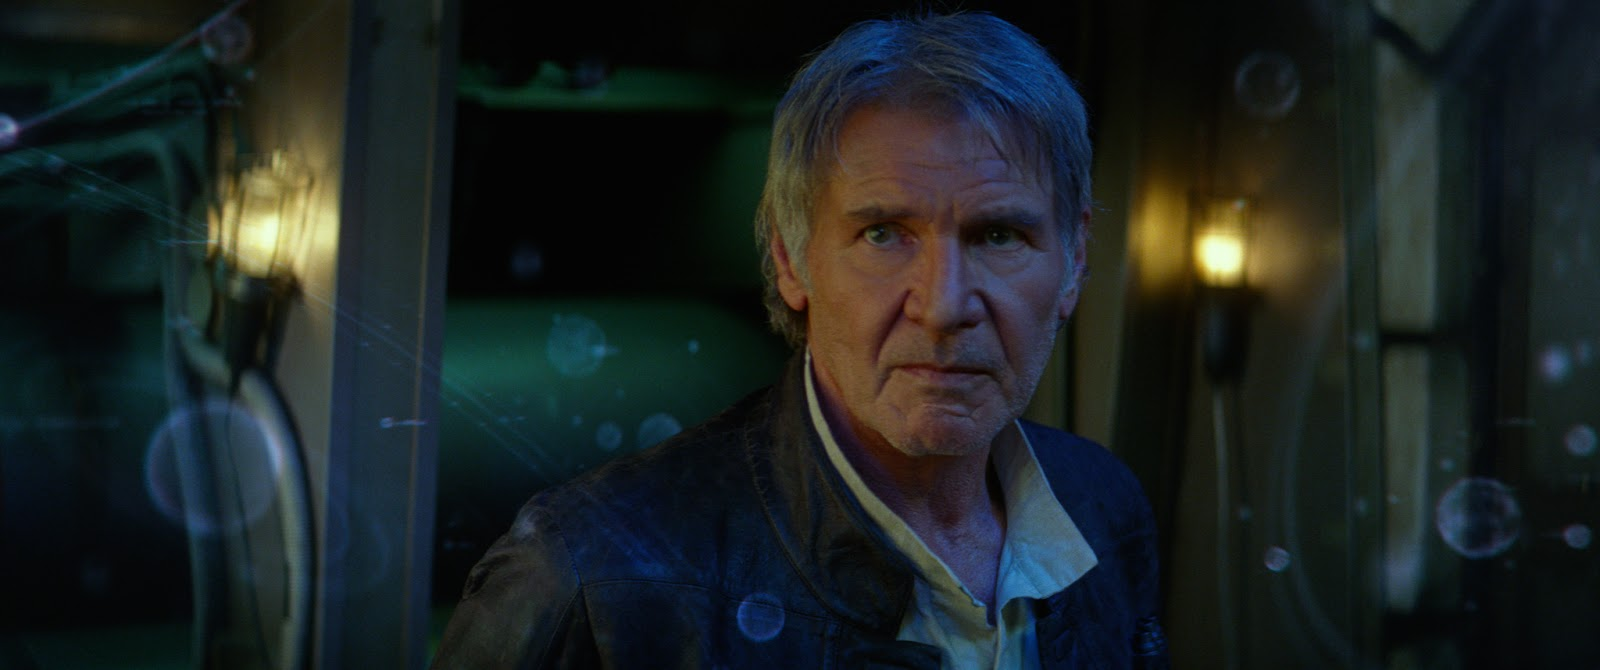 star wars the force awakens trailer harrison ford